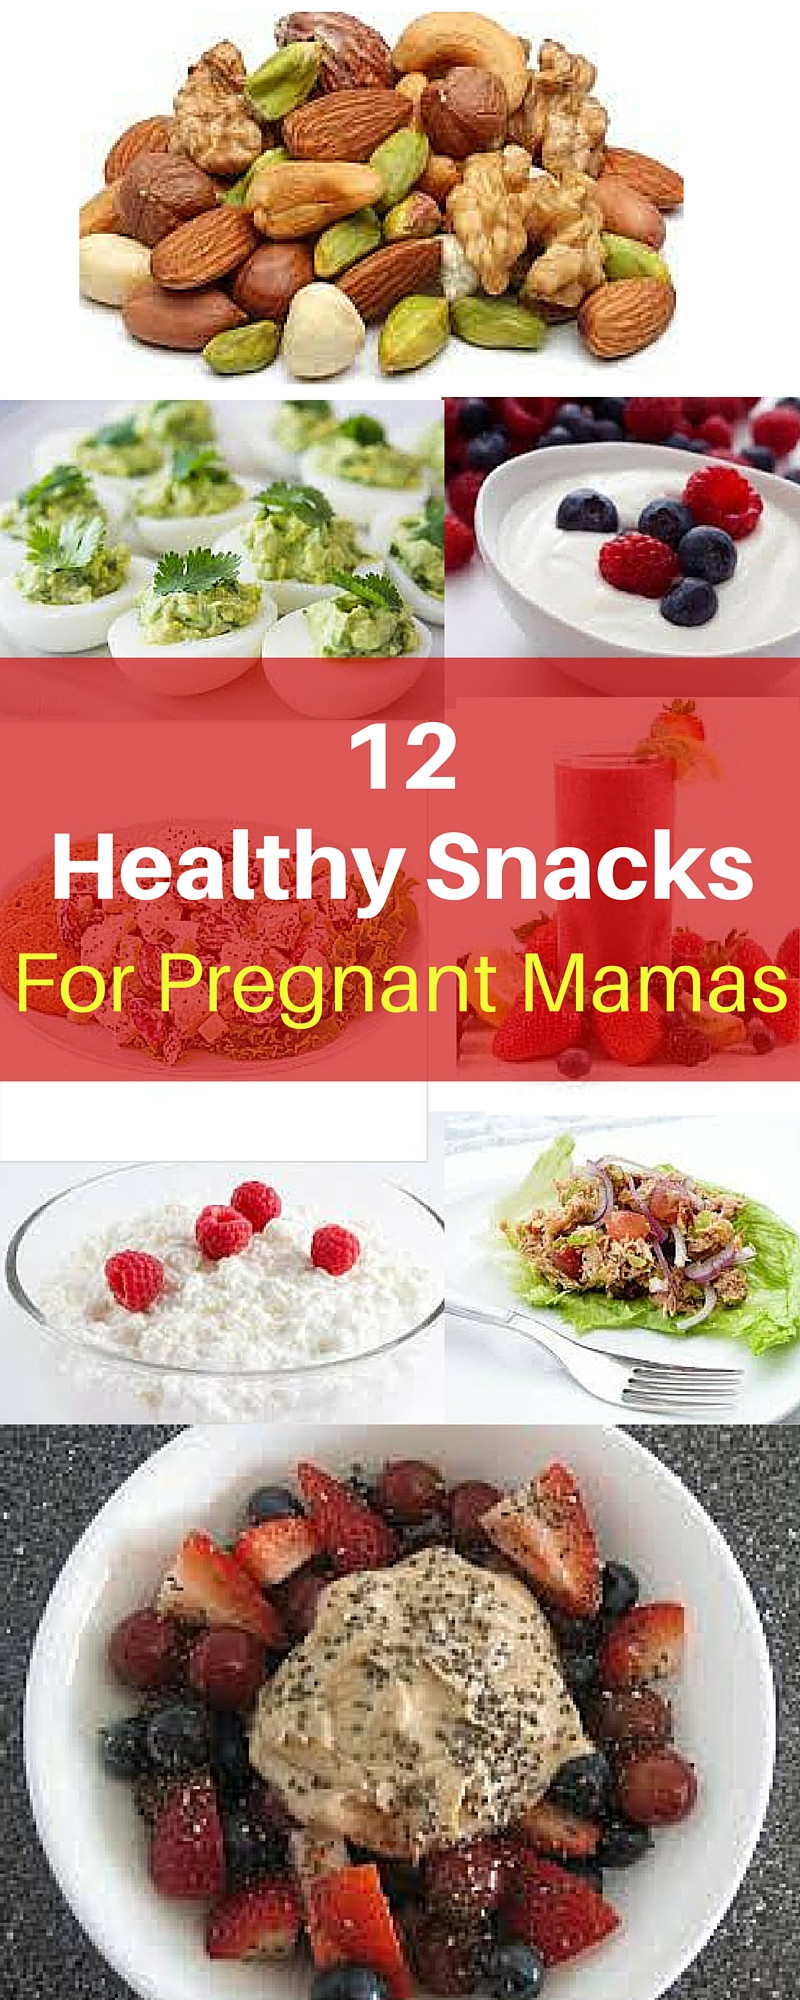 Good Healthy Snacks  10 Healthy Snacks For Pregnant Mamas Michelle Marie Fit